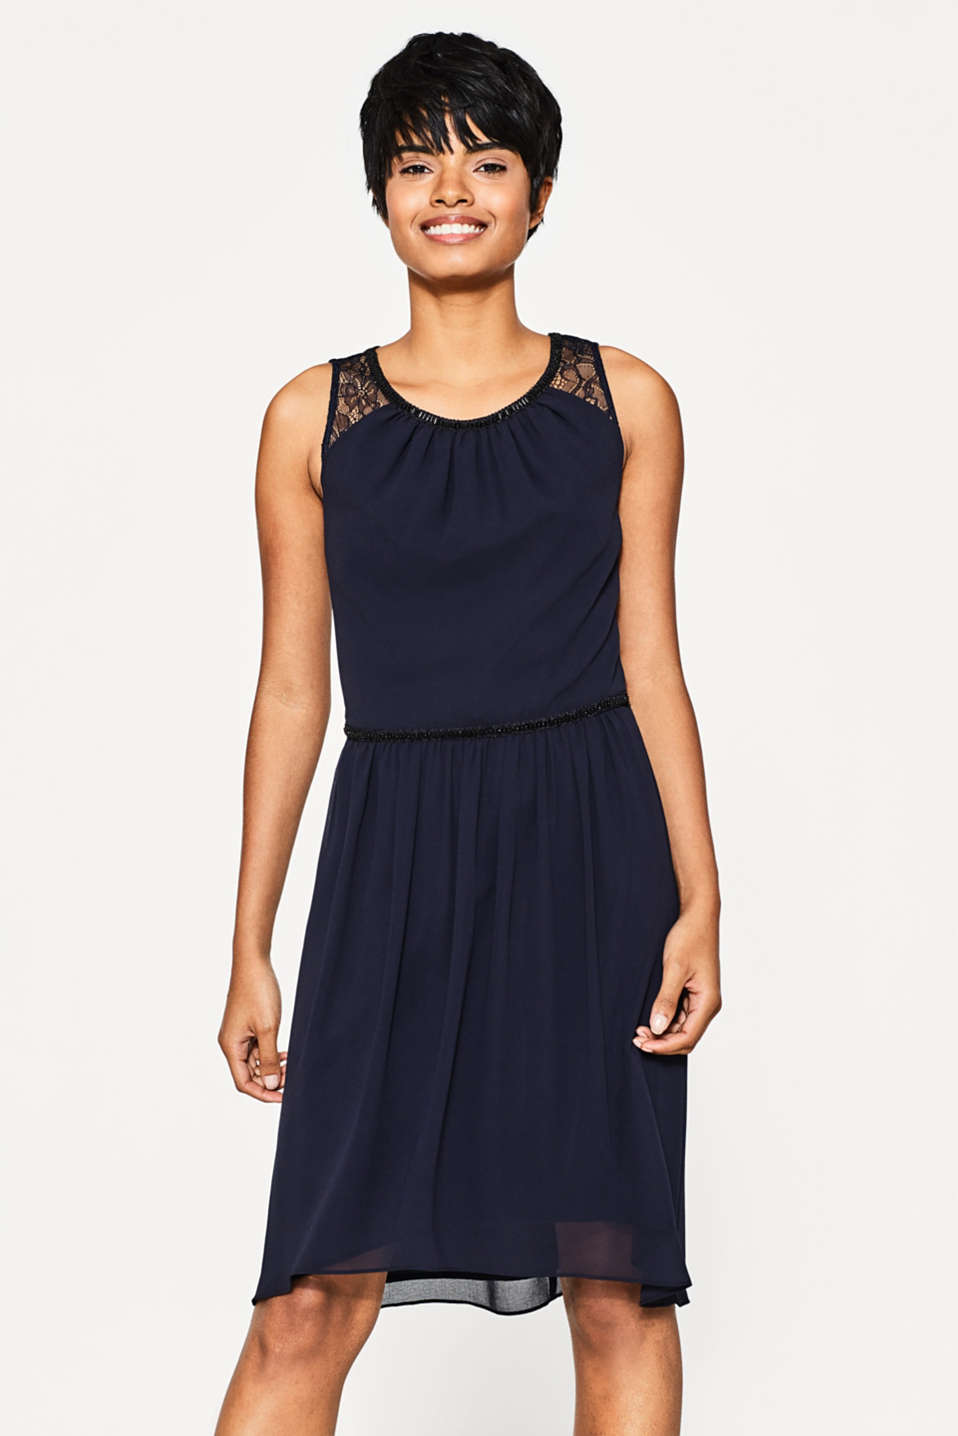 Esprit - Chiffon dress with lace and beads